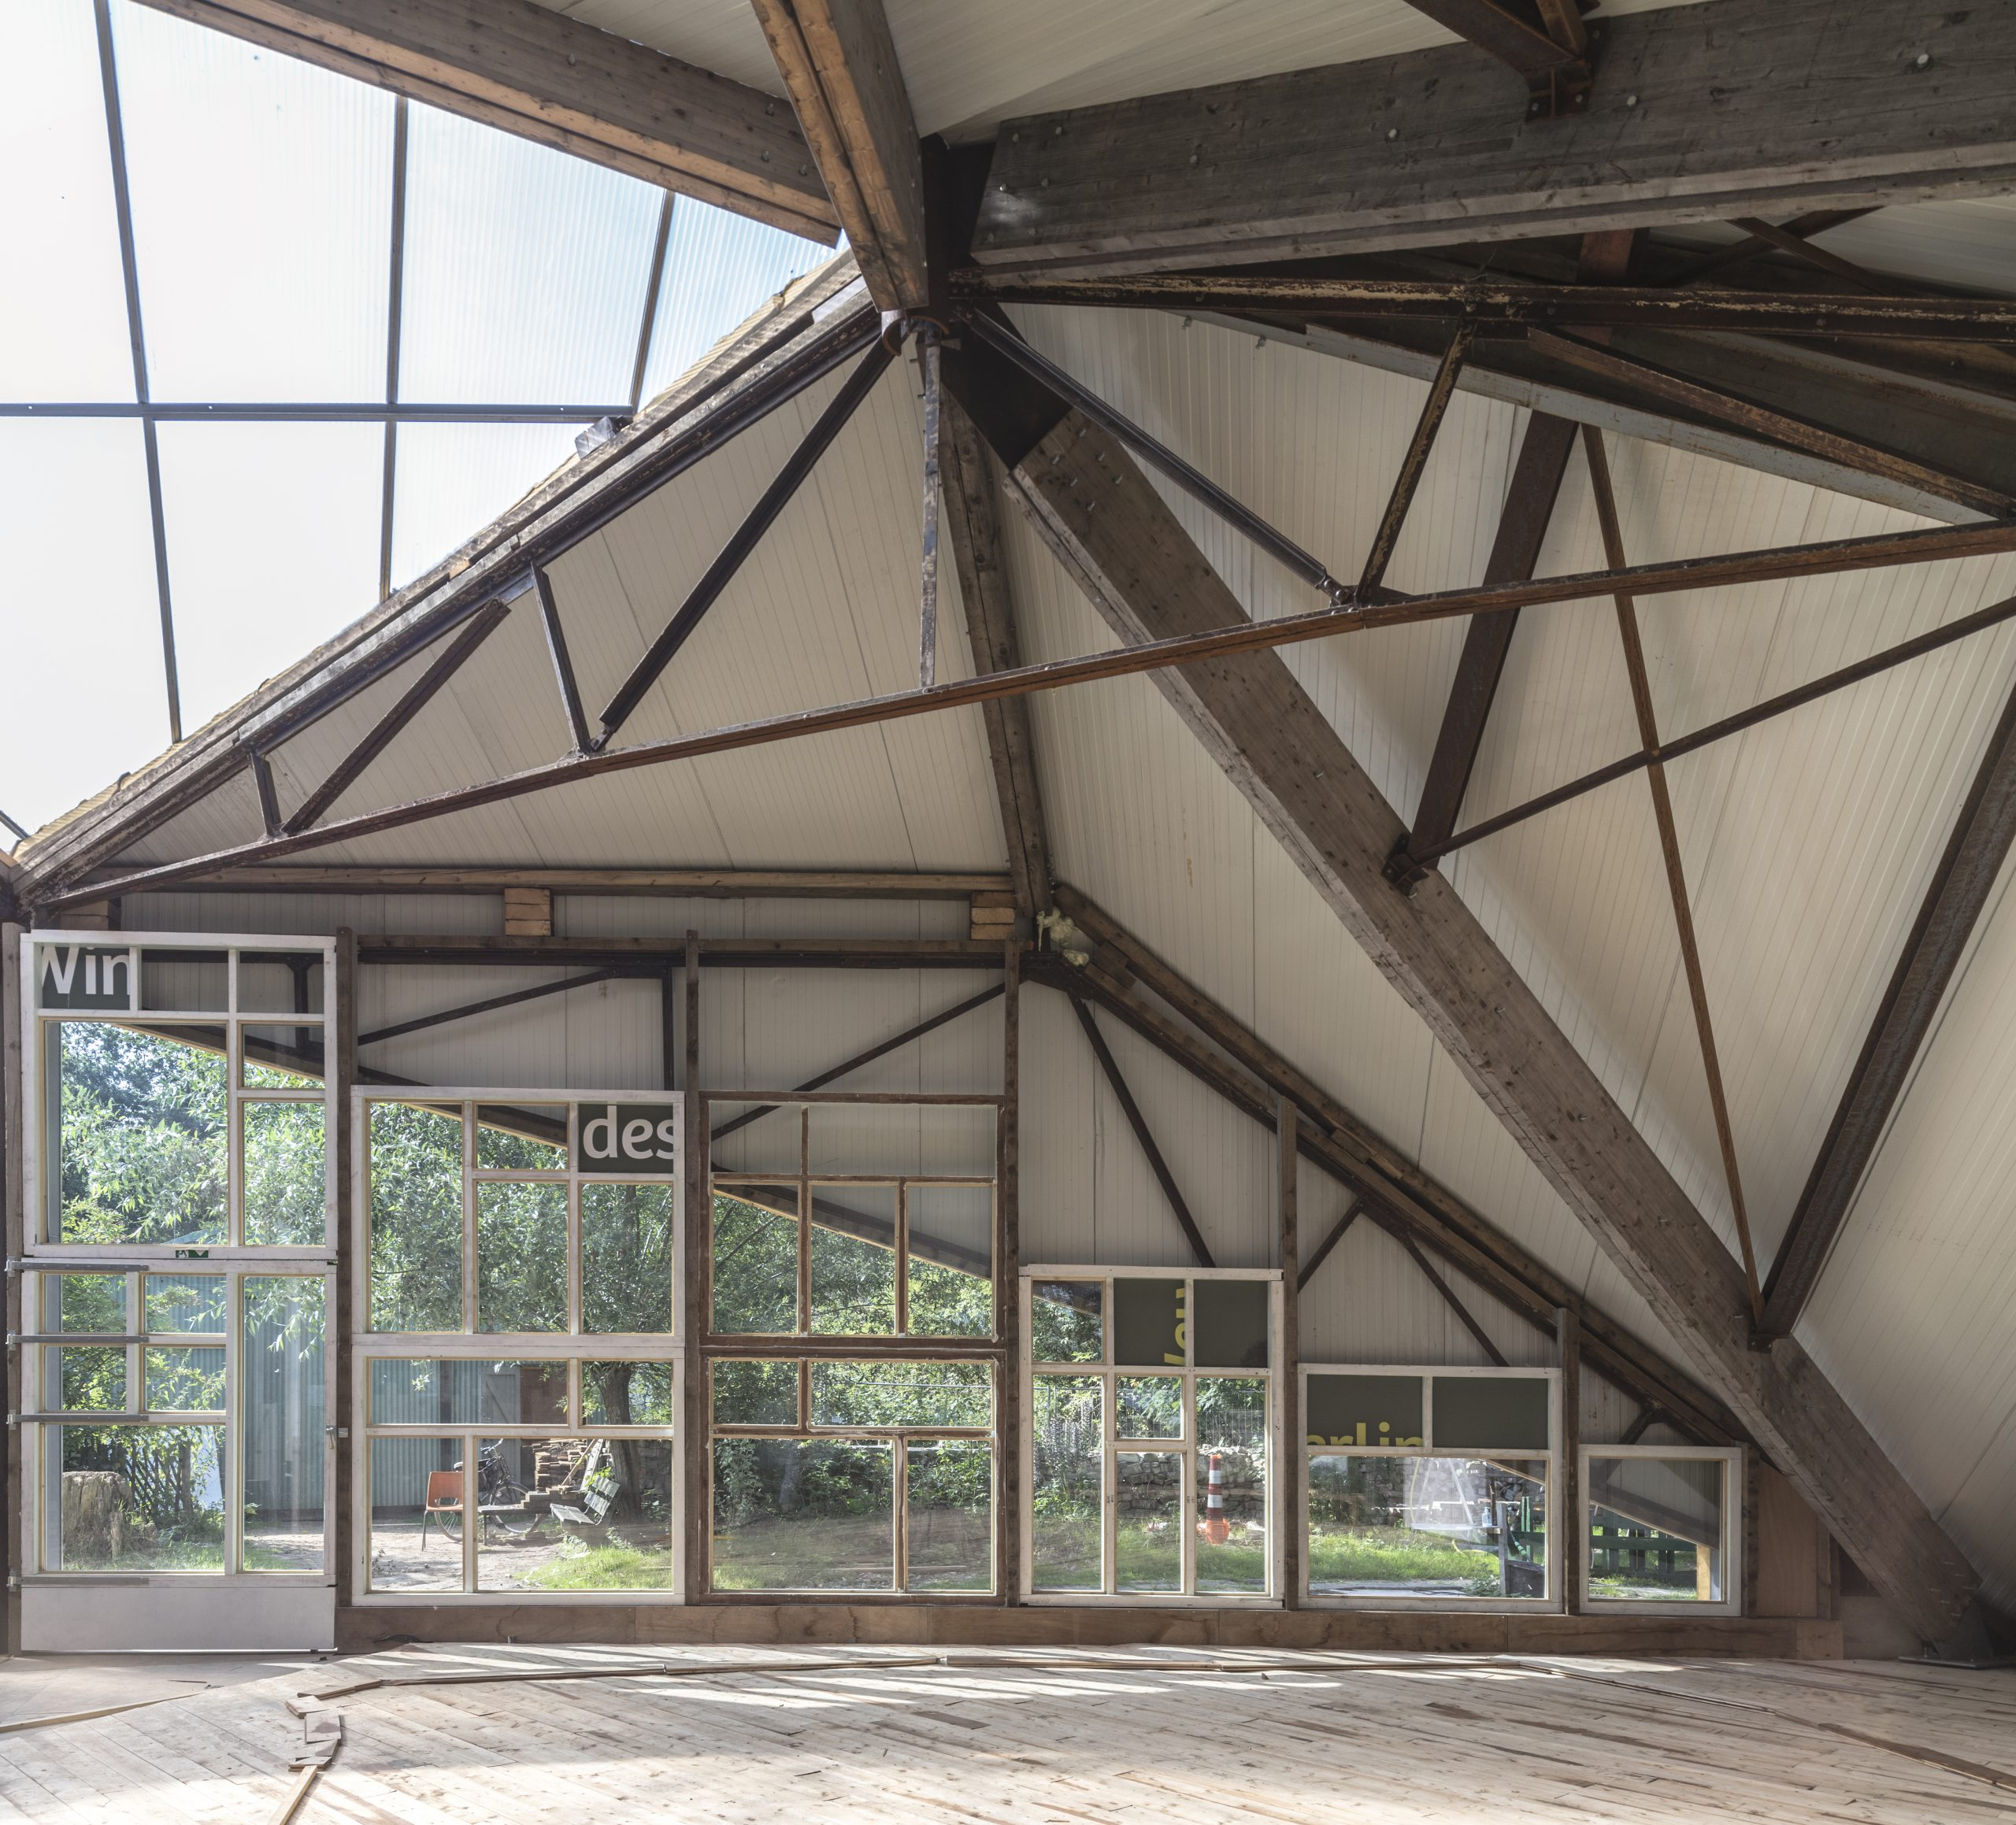 Interaction between the truss, window frames and closed roof panels.